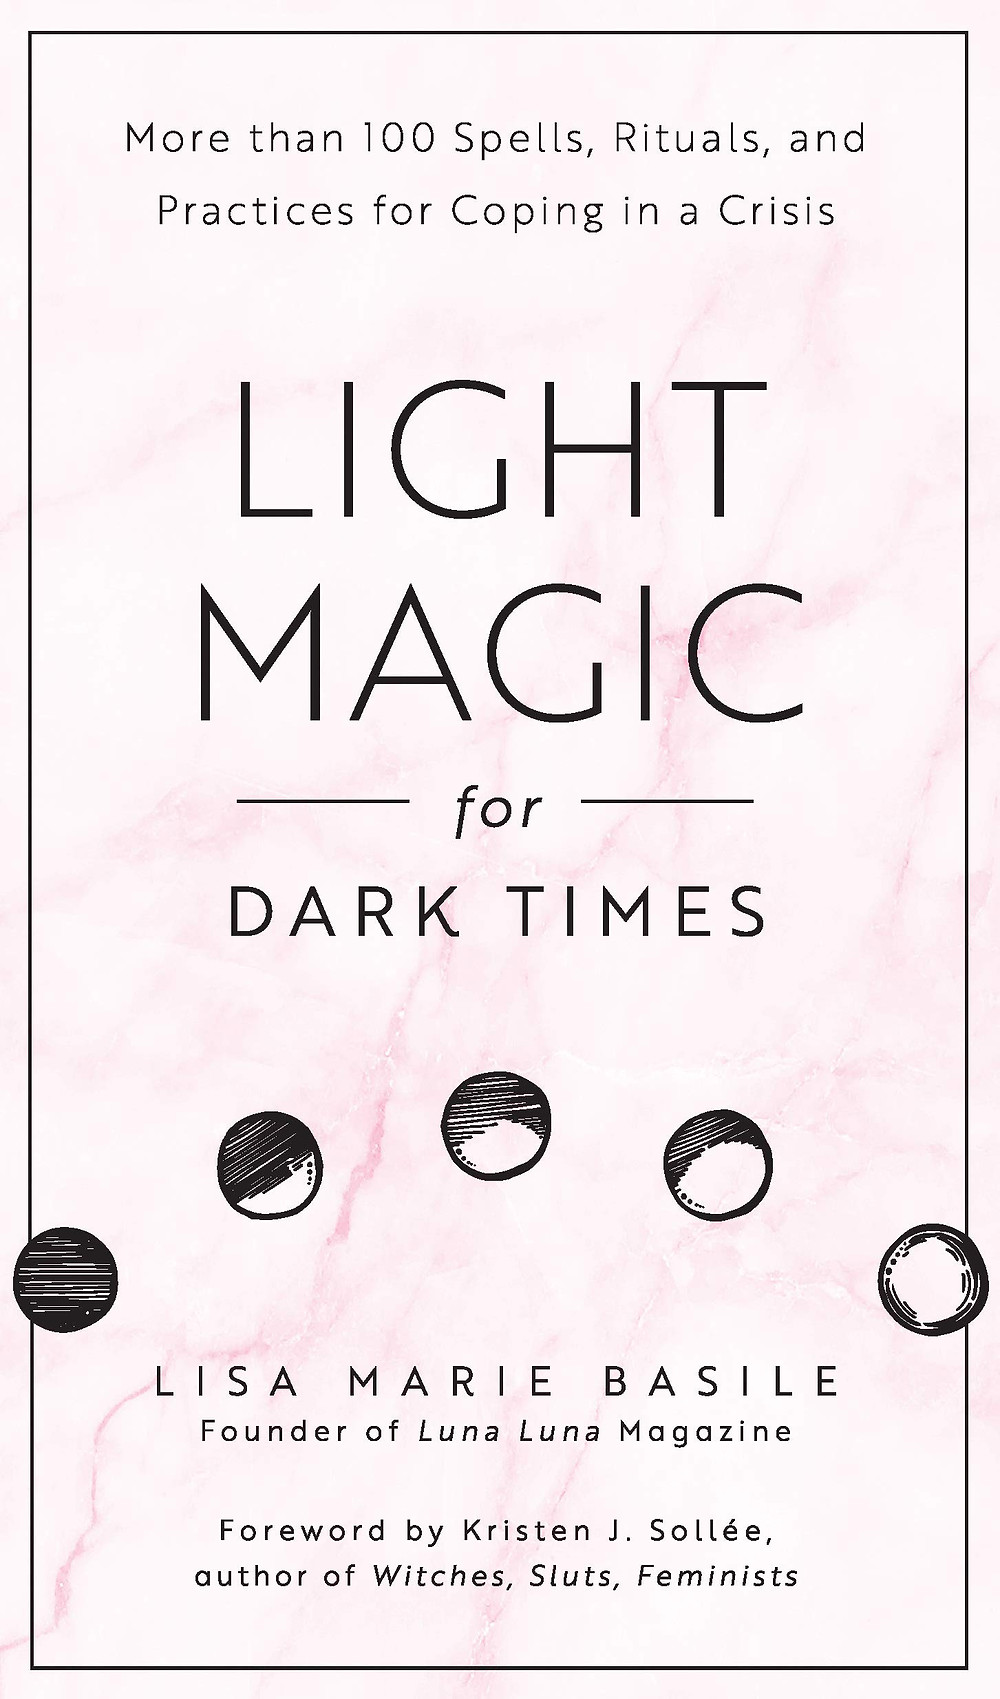 Witchy Pre-Orders You Don't Want to Miss Coffee, Book, and Candle